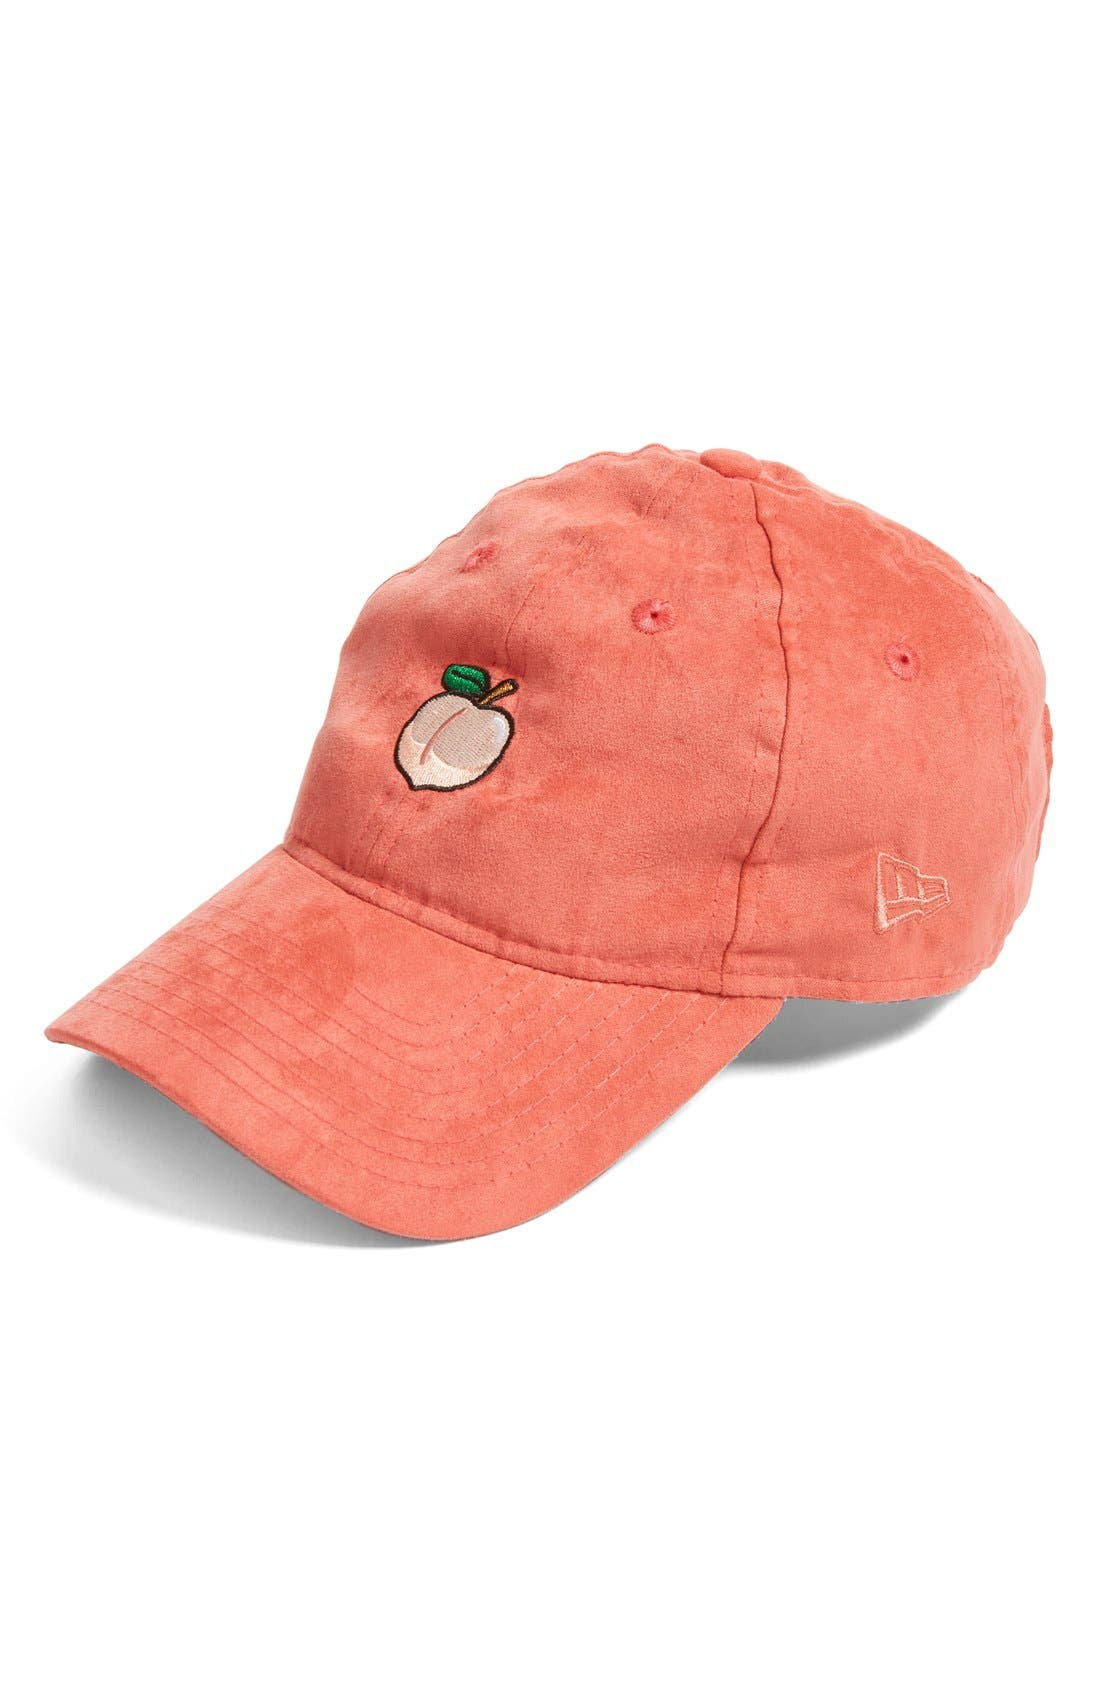 Alternate Image 1 Selected - New Era Cap Peach Baseball Cap (Nordstrom Exclusive)